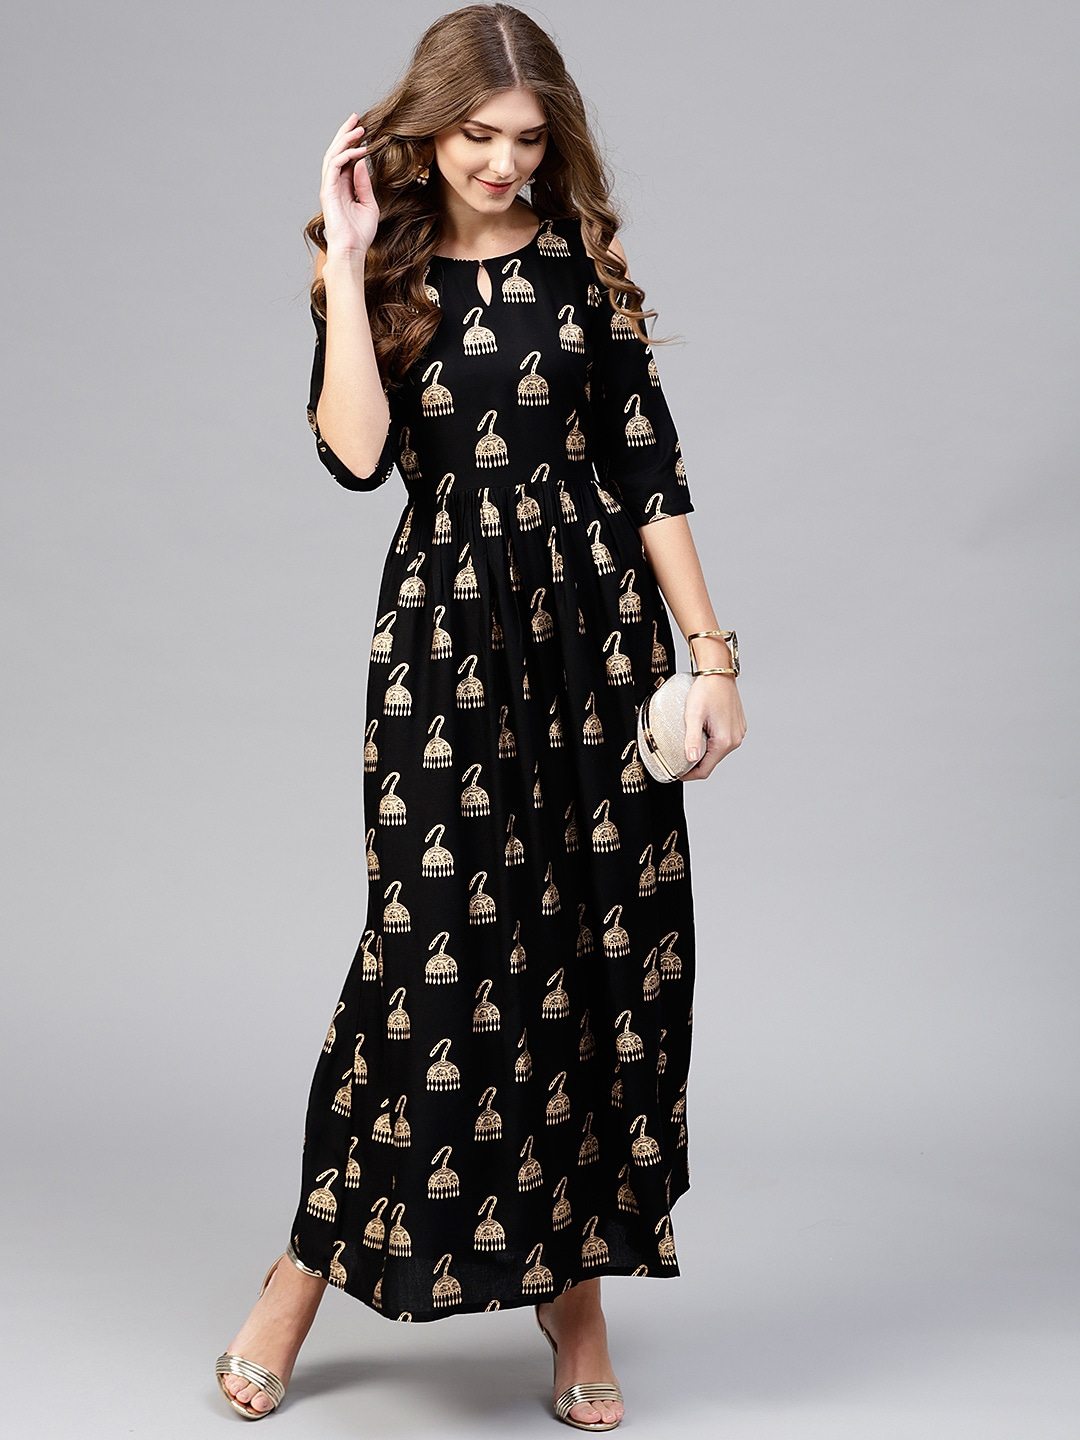 3f20f503e73a Dresses For Women - Buy Women Dresses Online - Myntra